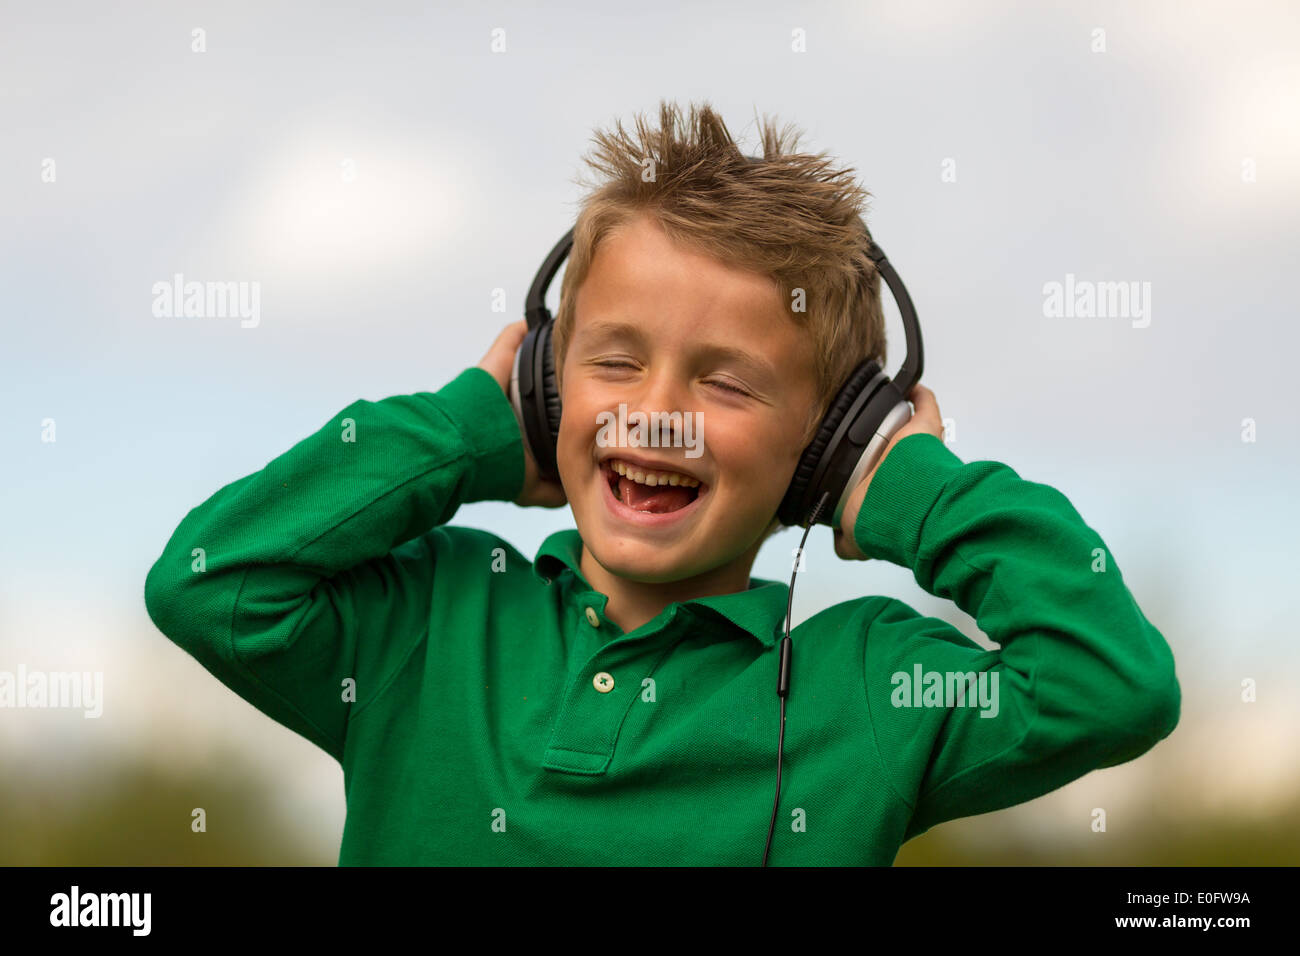 Boy listening to music and singing along. Trademarks have been removed. - Stock Image